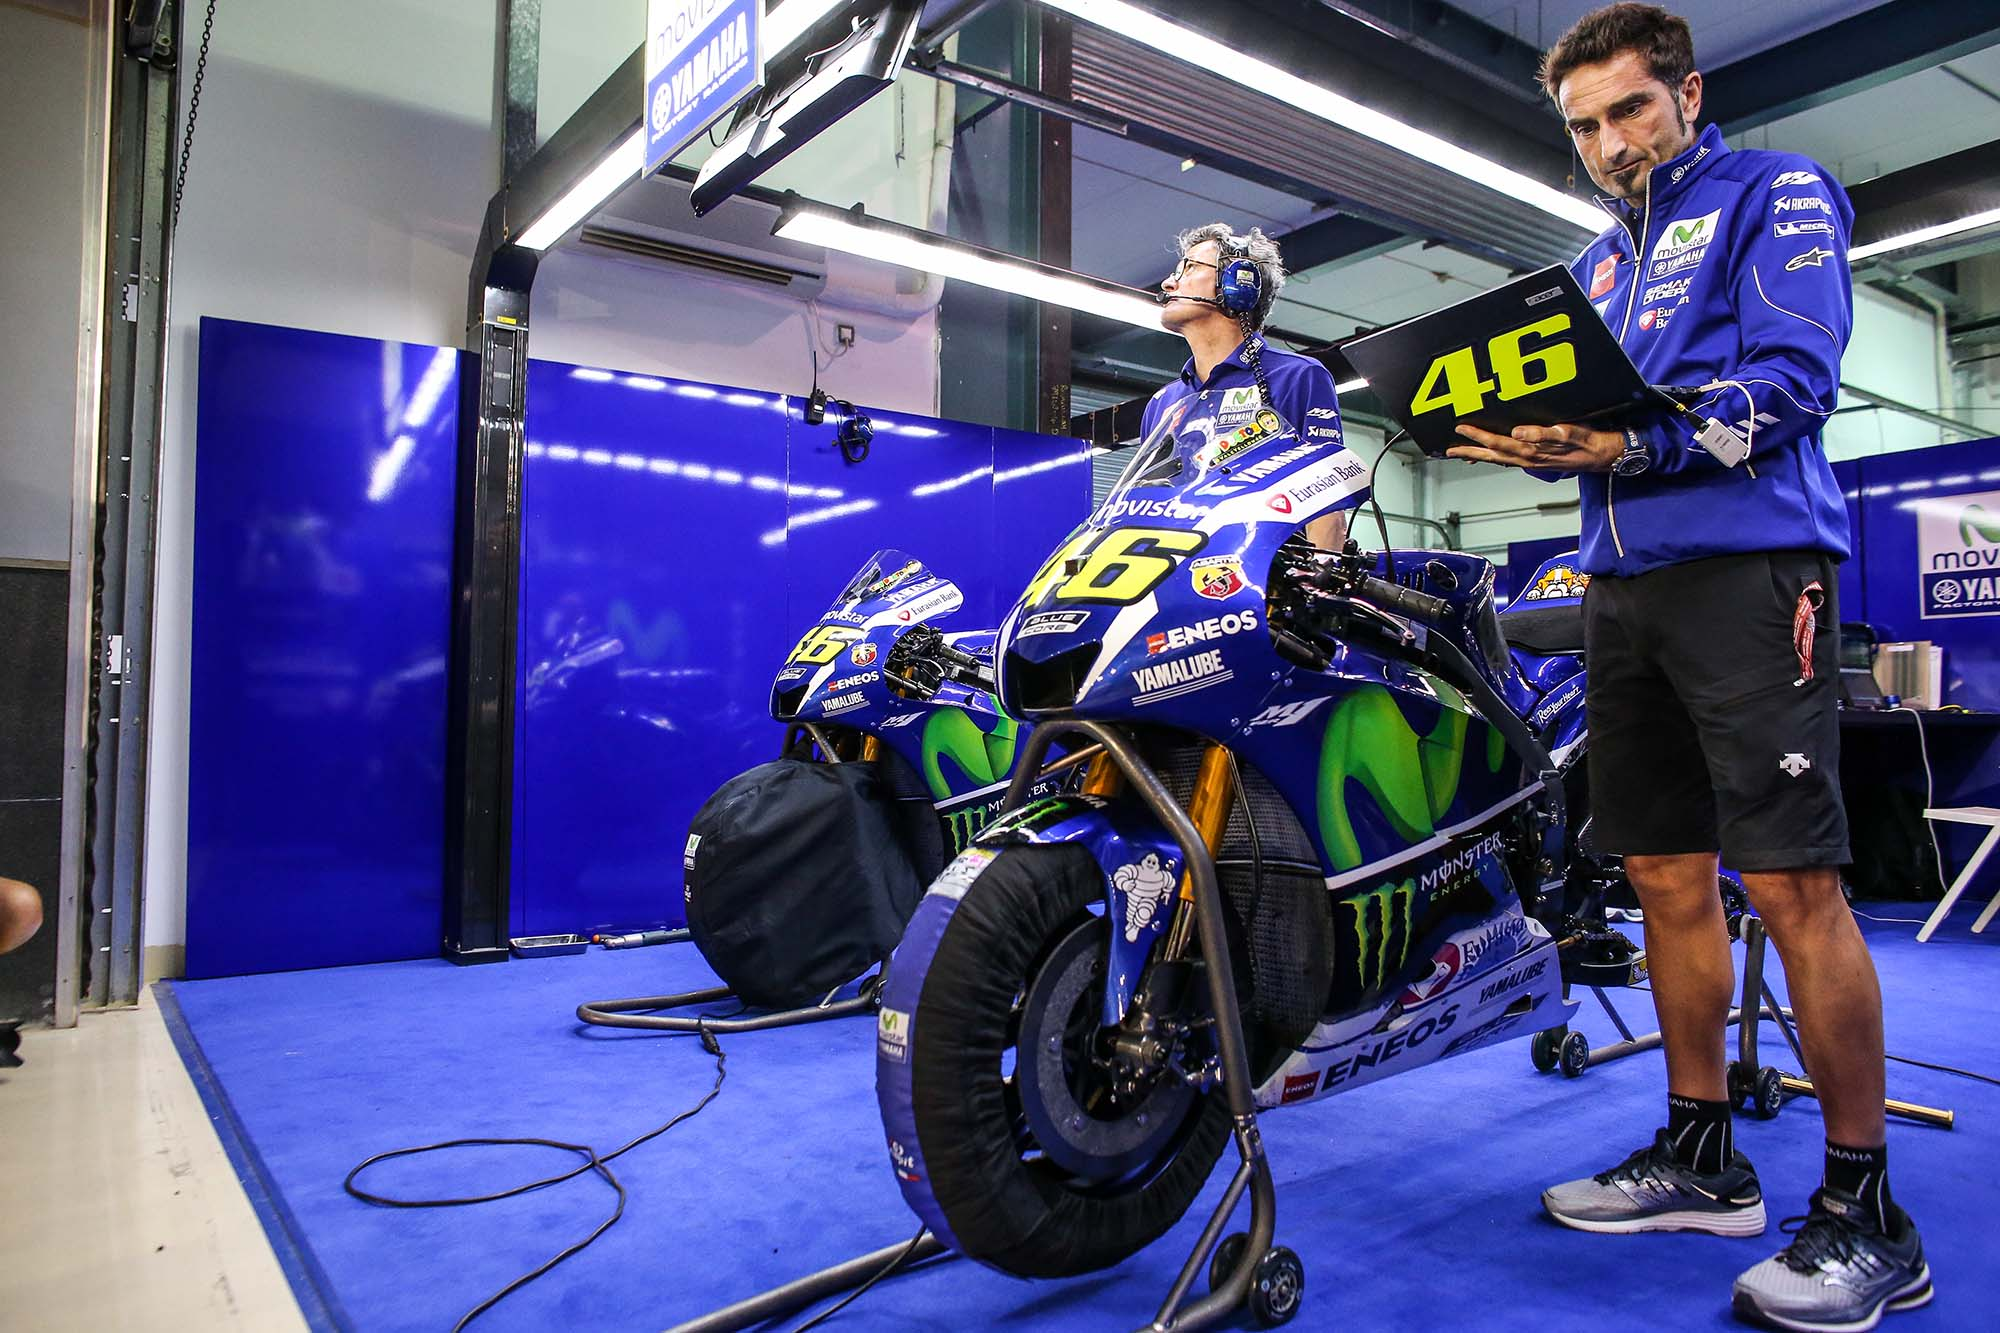 Analyzing Valentino Rossi's Two-Year Deal with Yamaha ...